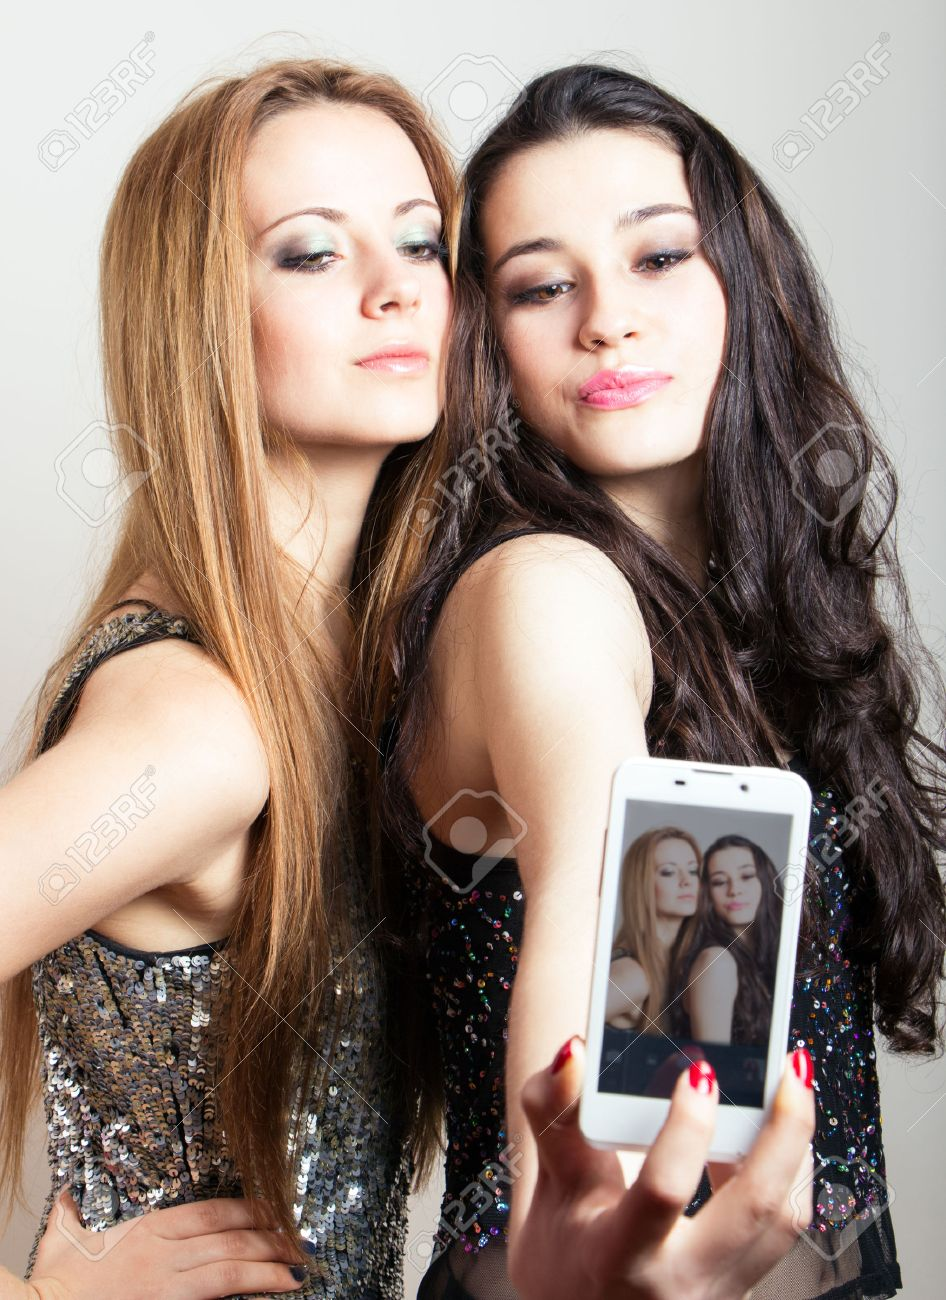 beautiful girls ready for a night out making a funny selfie with